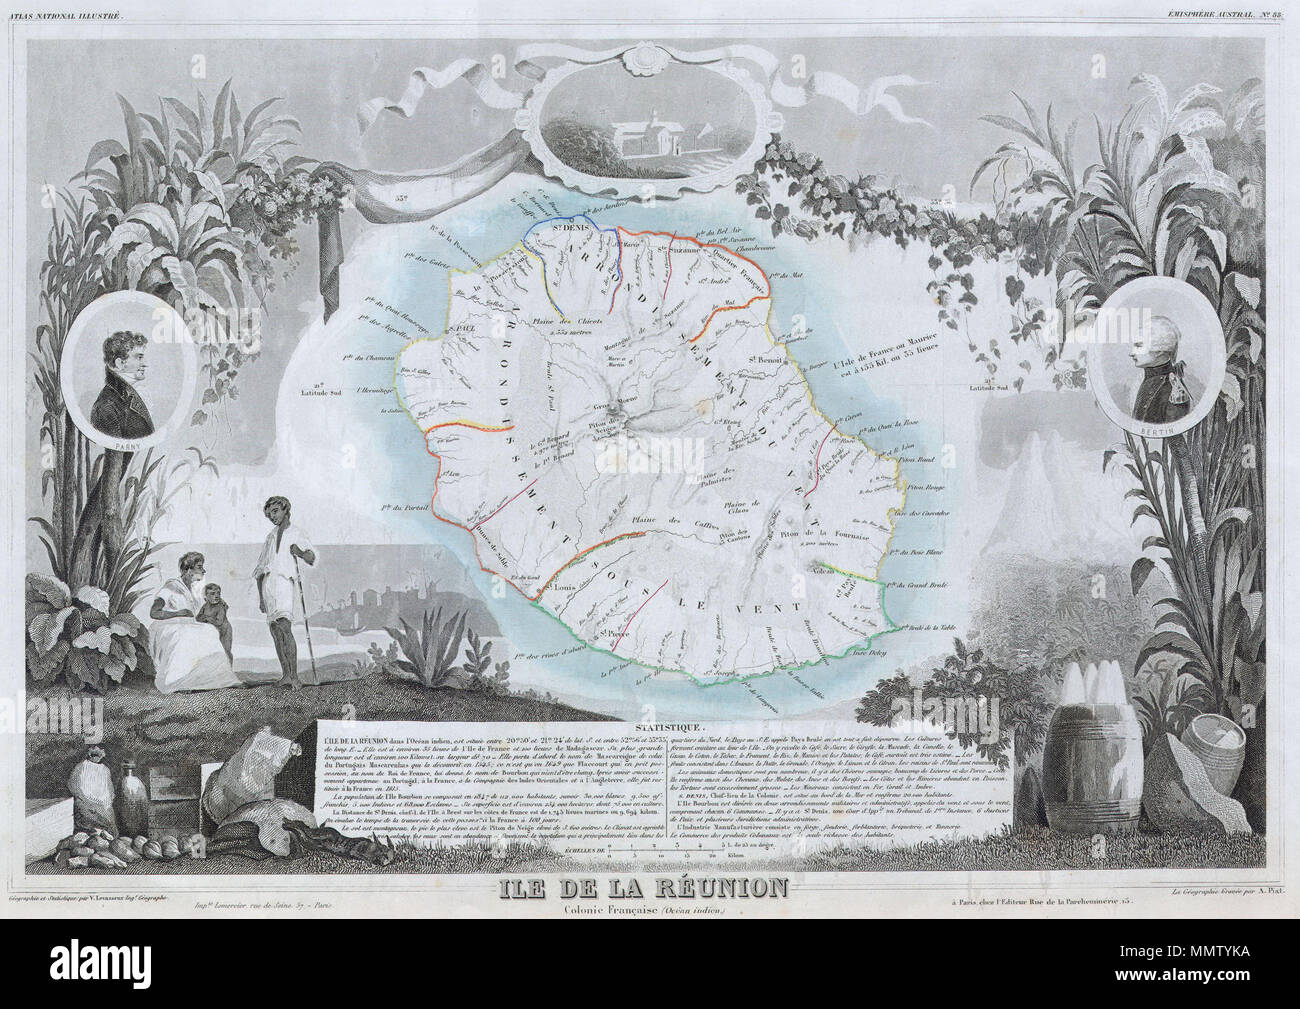 Carte Statistique Madagascar.English This Is A Fascinating 1850 Map Of The French Island